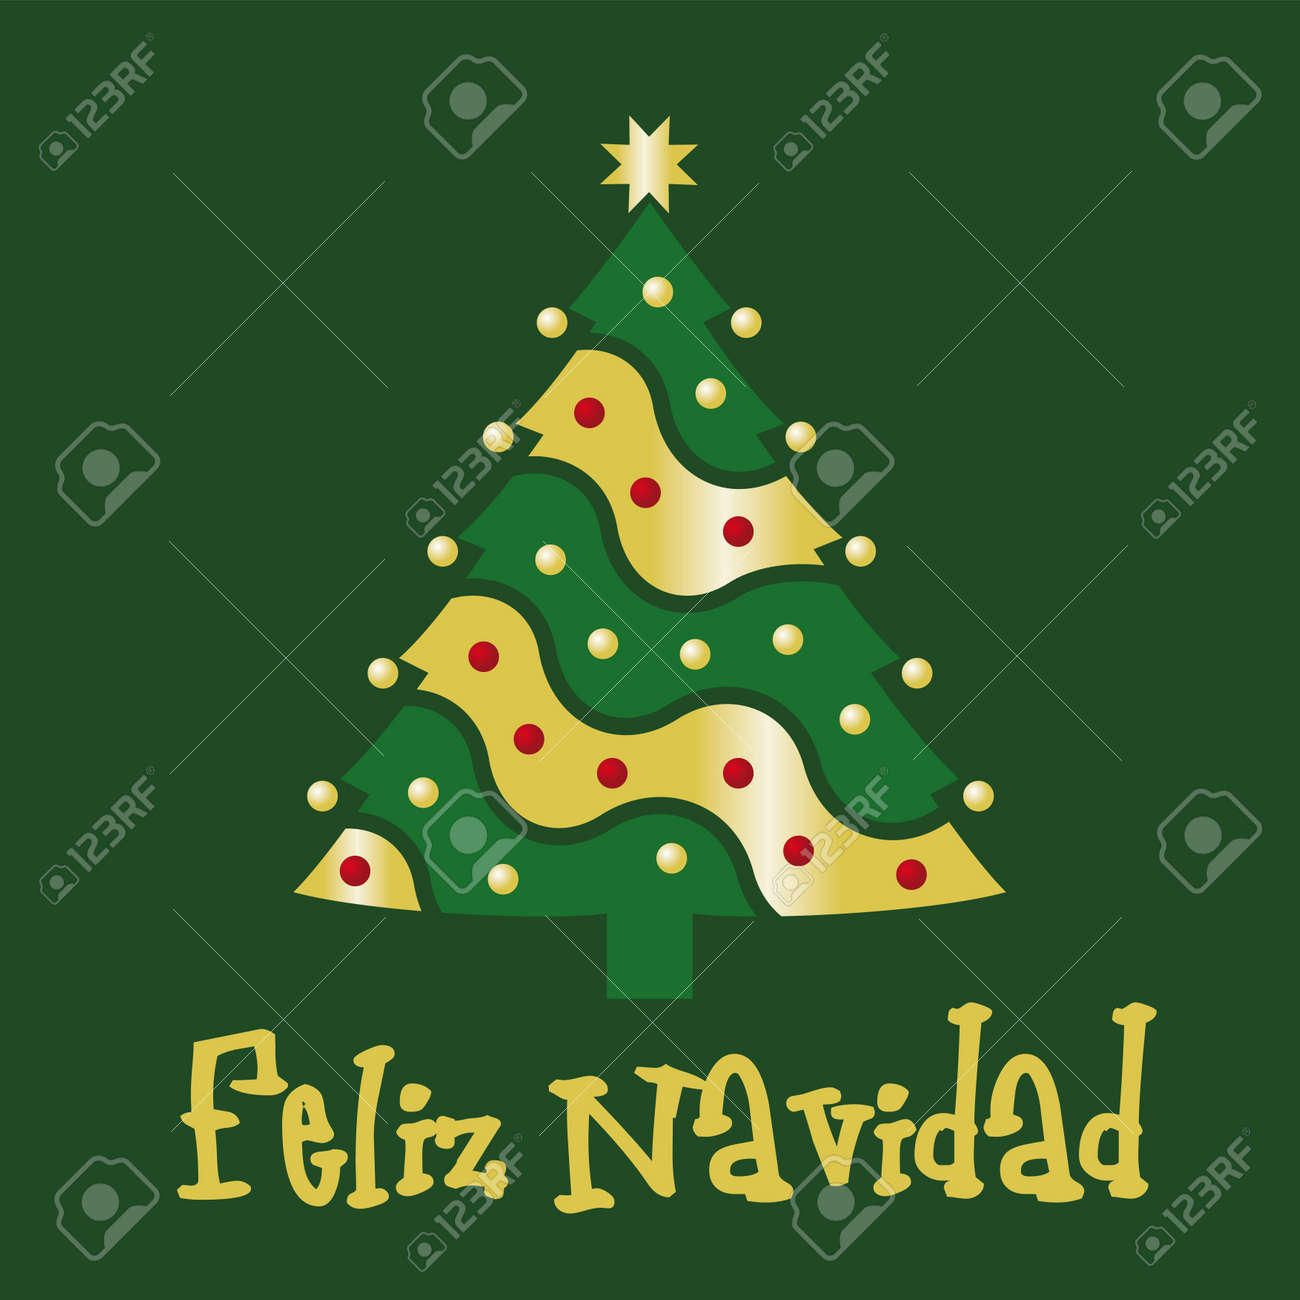 Christmas Card Green Spanish Royalty Free Cliparts, Vectors, And ...